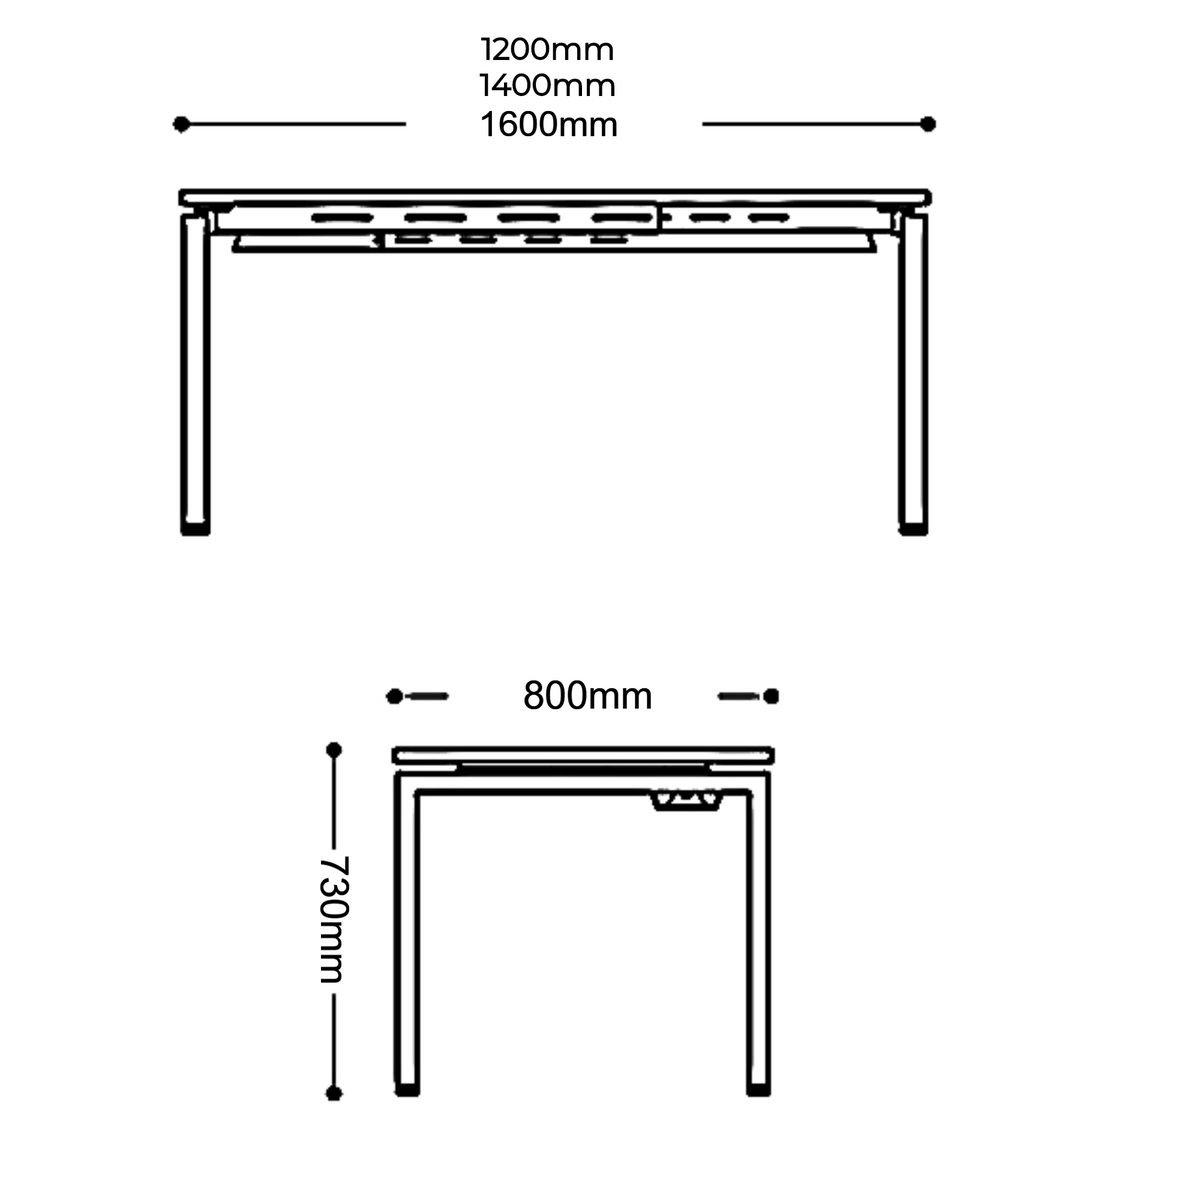 Dimensions for Mobili Office White Single Fixed Height Desk